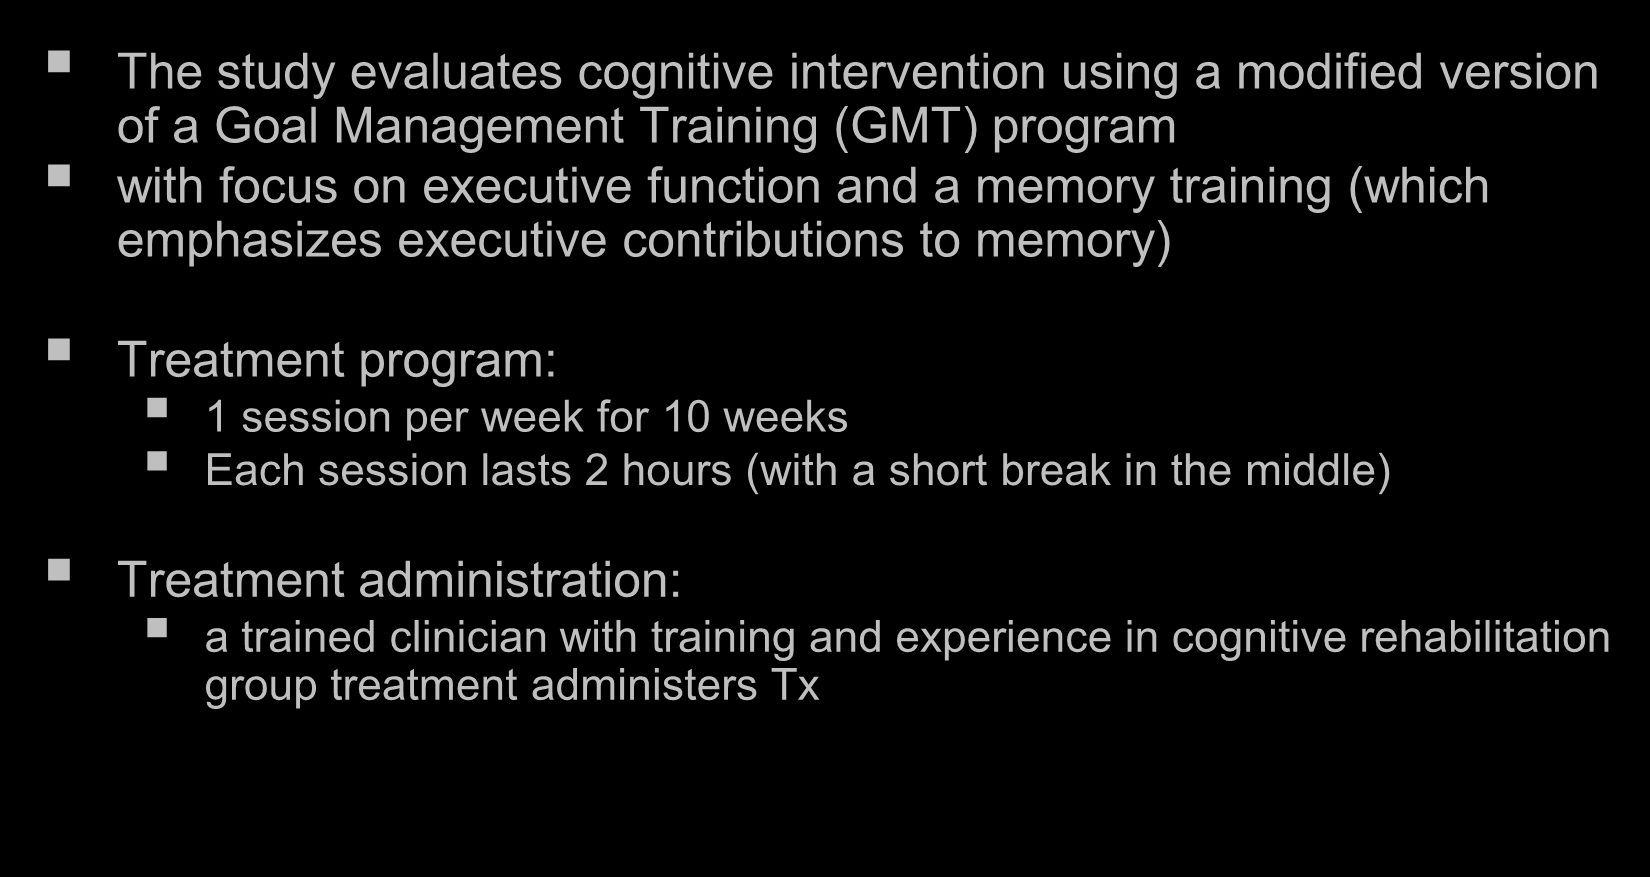 Cognitive Training Intervention The study evaluates cognitive intervention using a modified version of a Goal Management Training (GMT) program with focus on executive function and a memory training